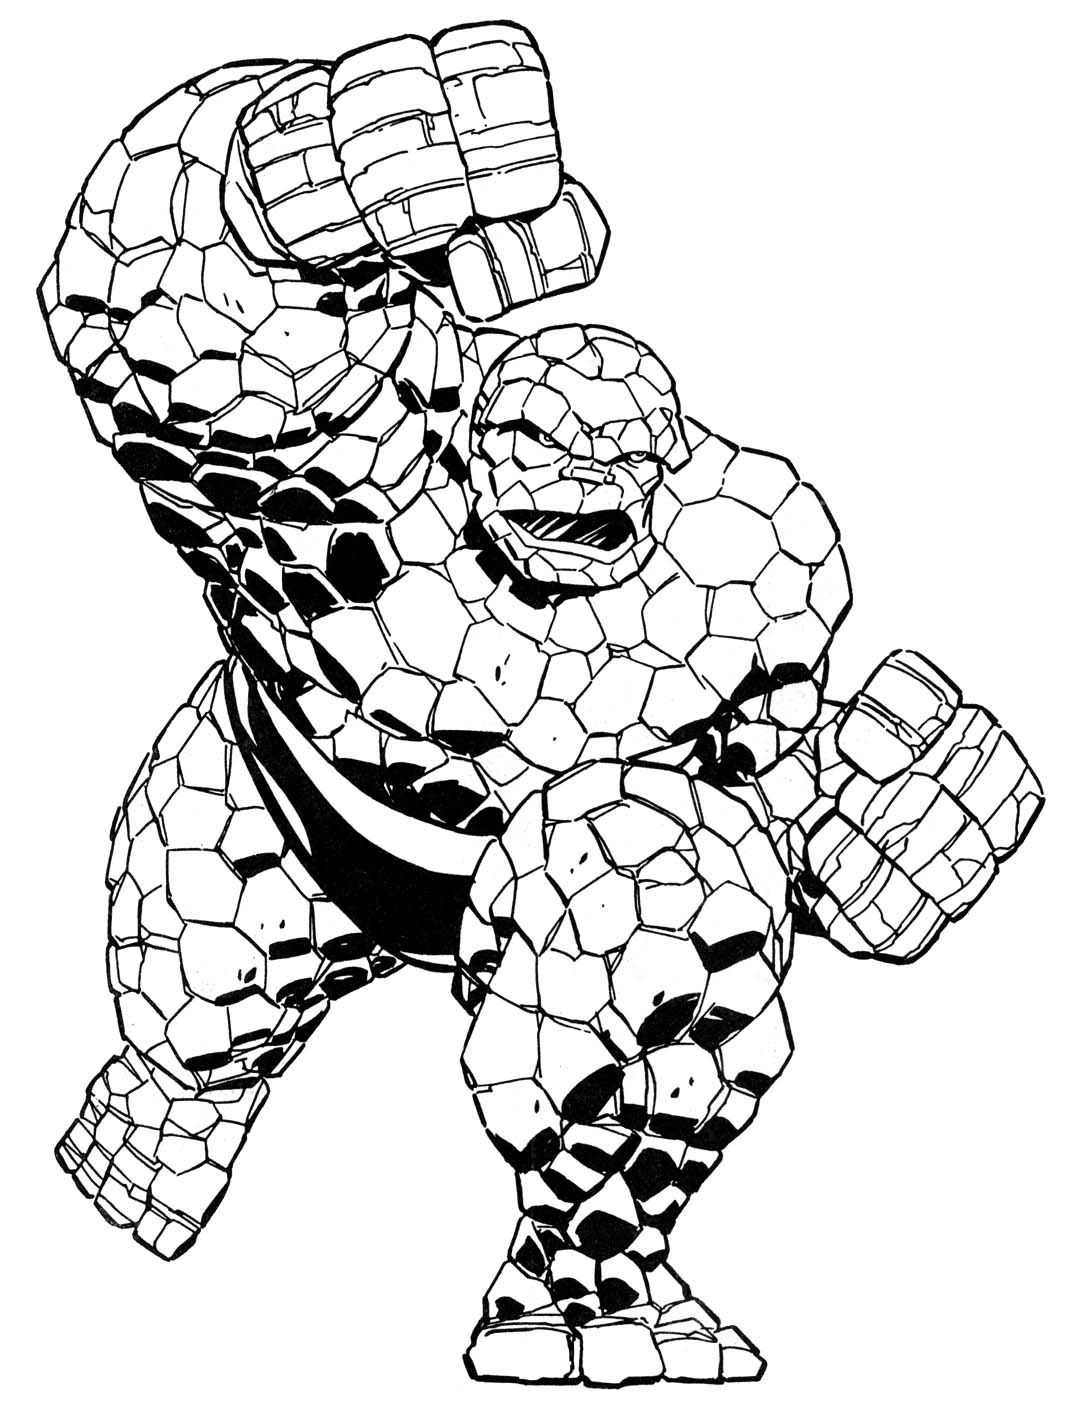 marvel superhero coloring pages superhero coloring pages best coloring pages for kids pages marvel superhero coloring